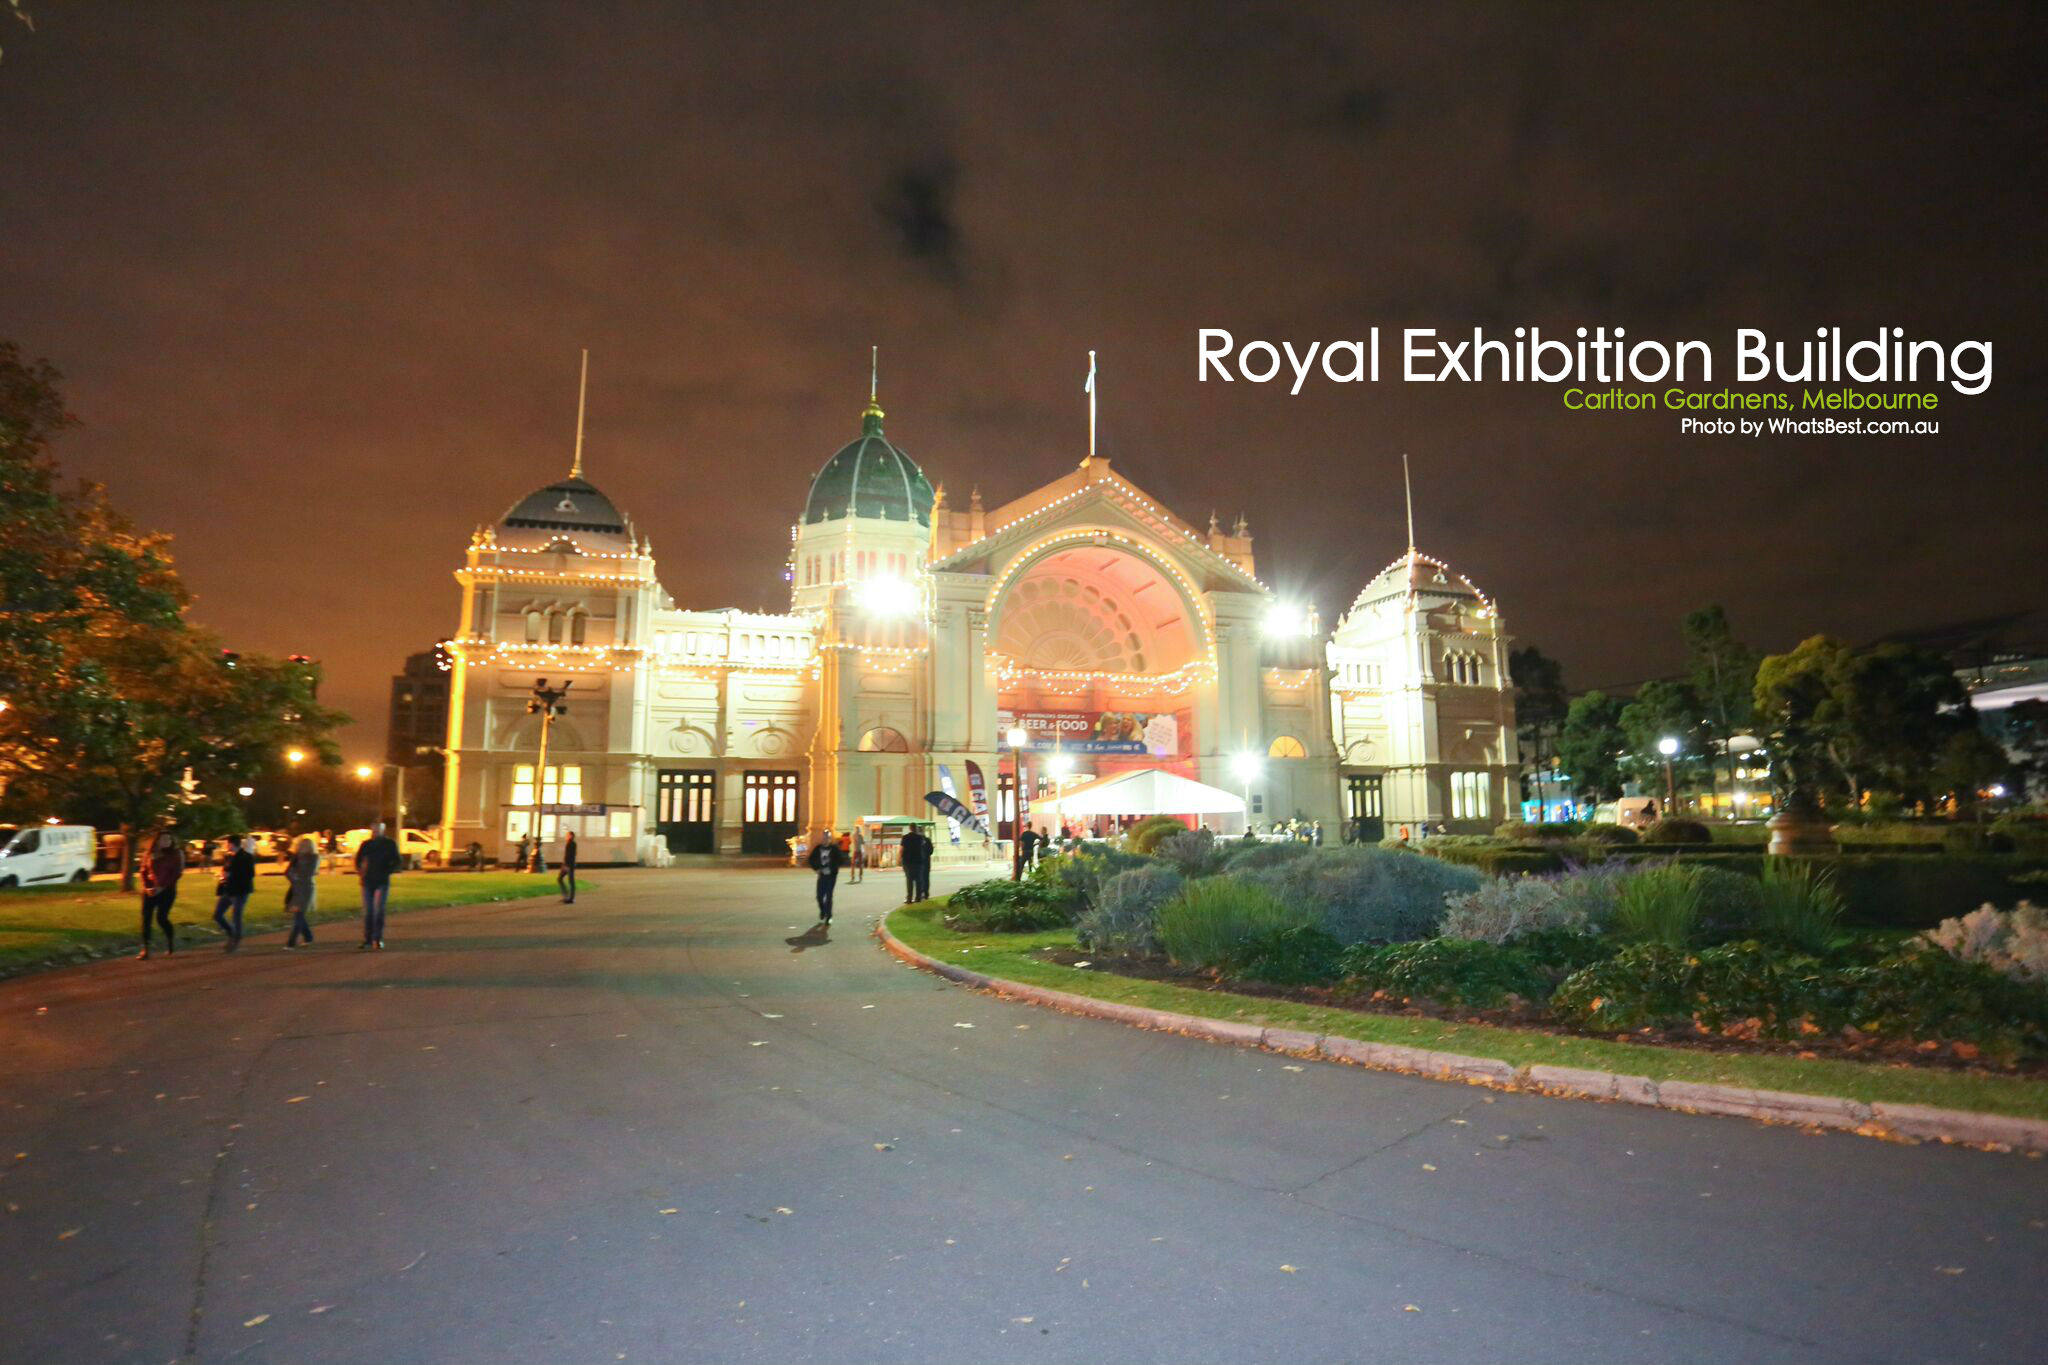 royal exhibition building melbourne victoria